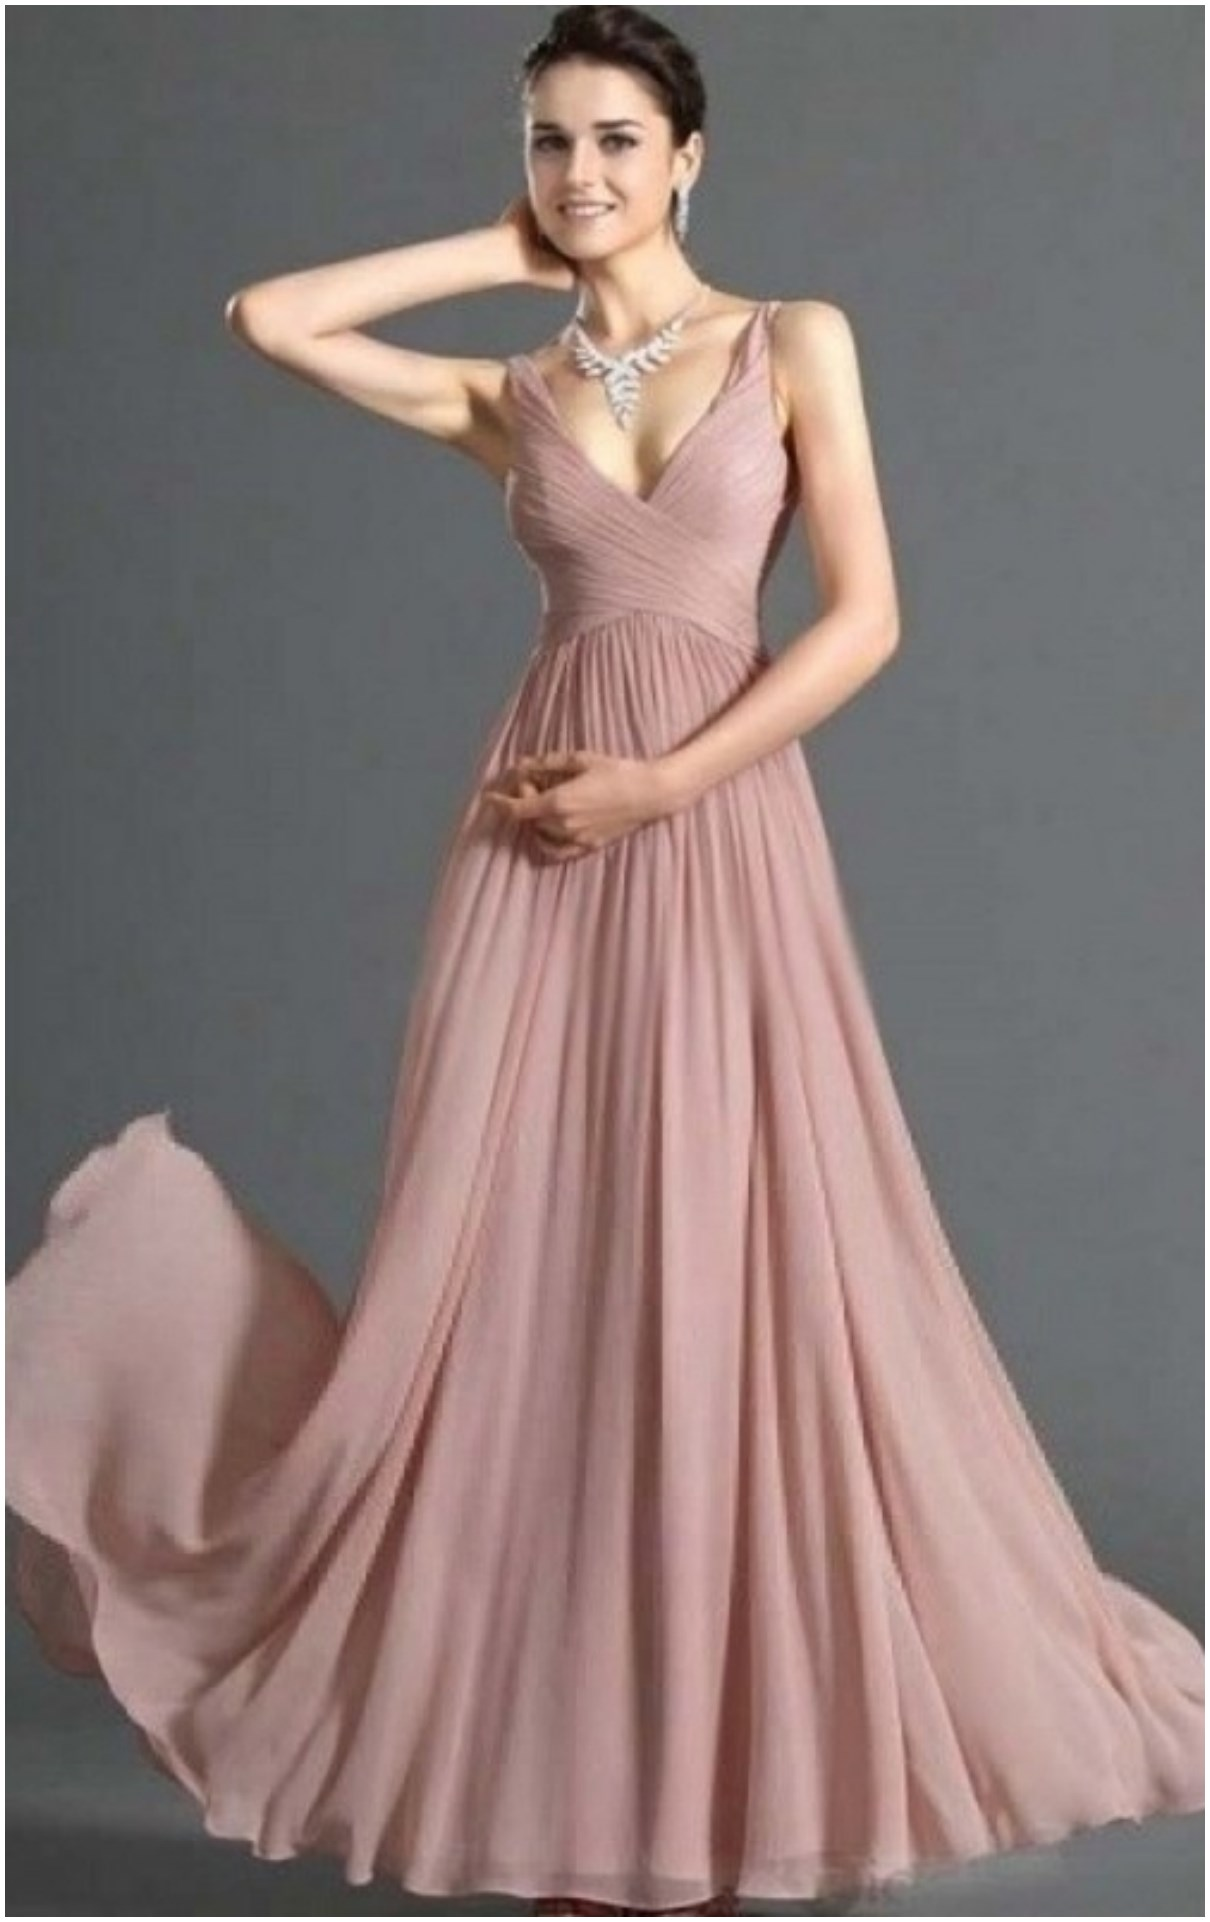 Best Canada Prom Dresses for Girls